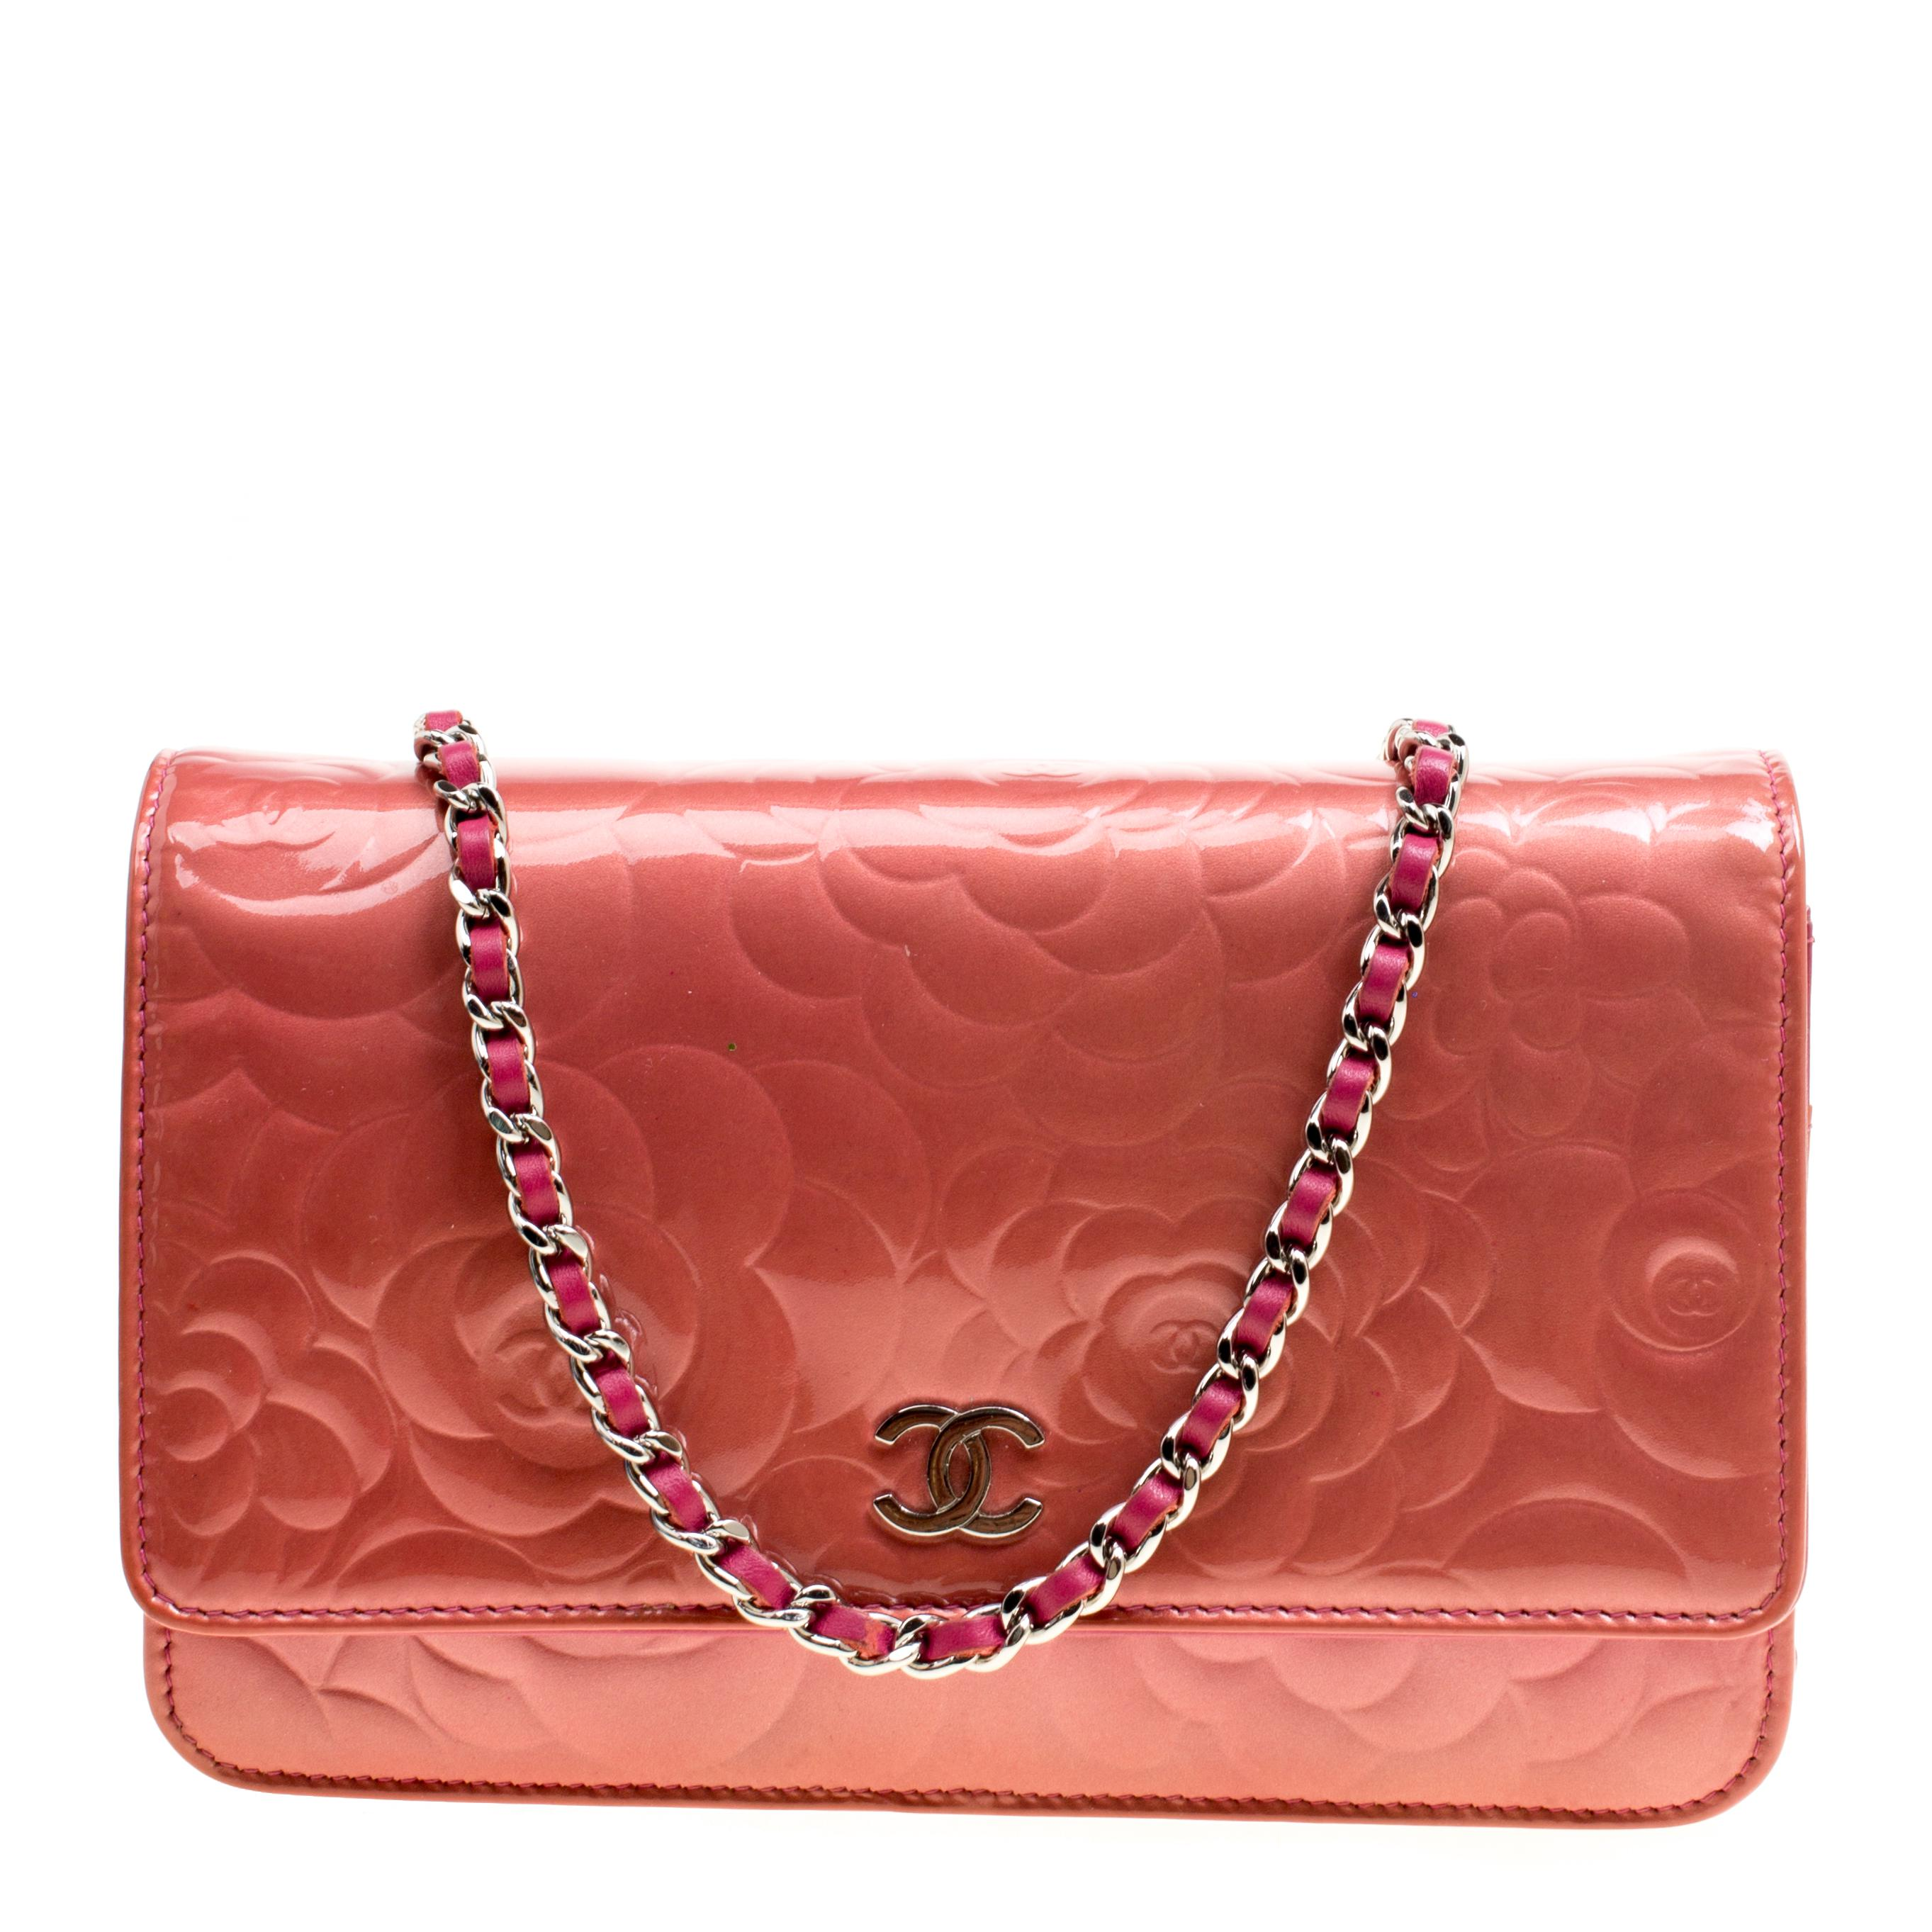 3606b2a9857 Lyst - Chanel Rose Patent Leather Camellia Wallet On Chain in Pink